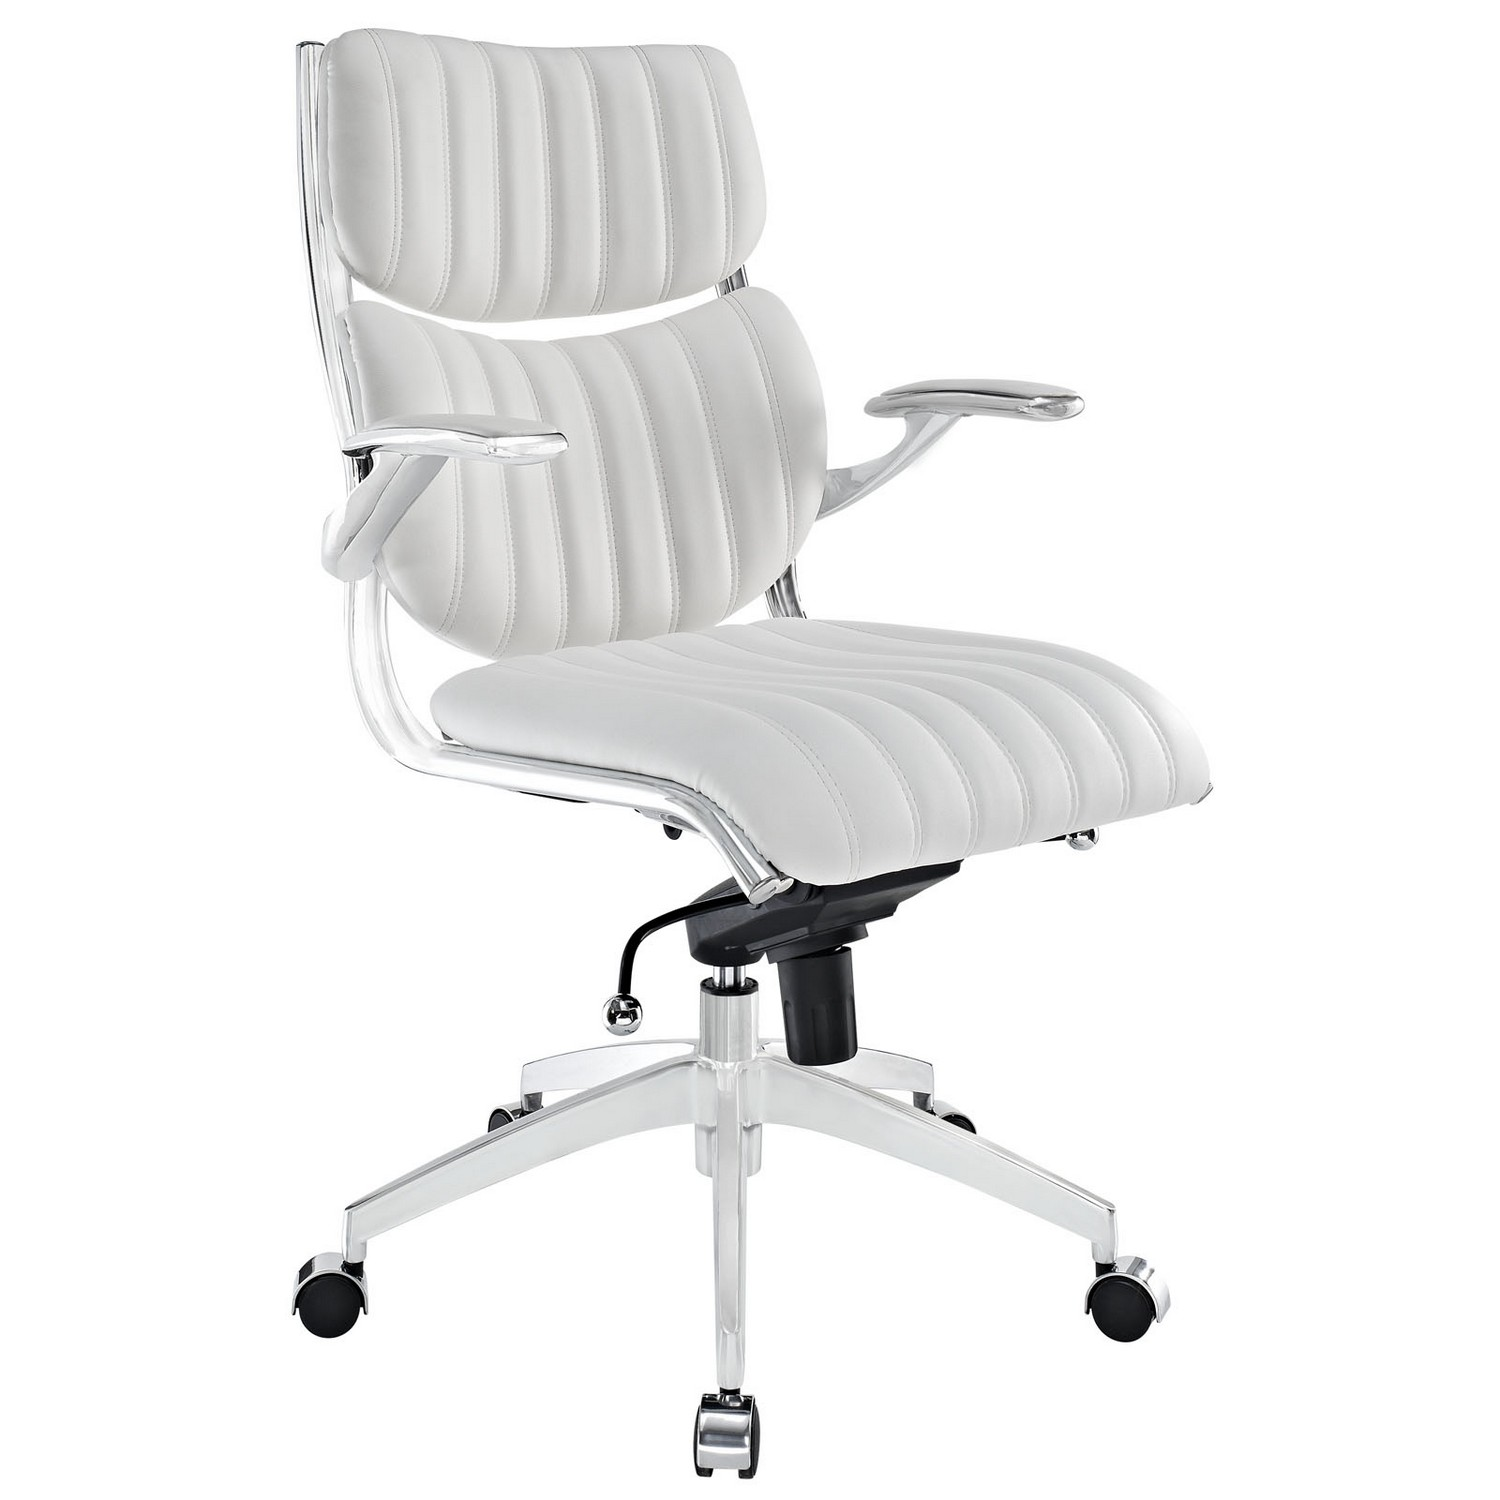 Modway Escape Mid Back Office Chair - White